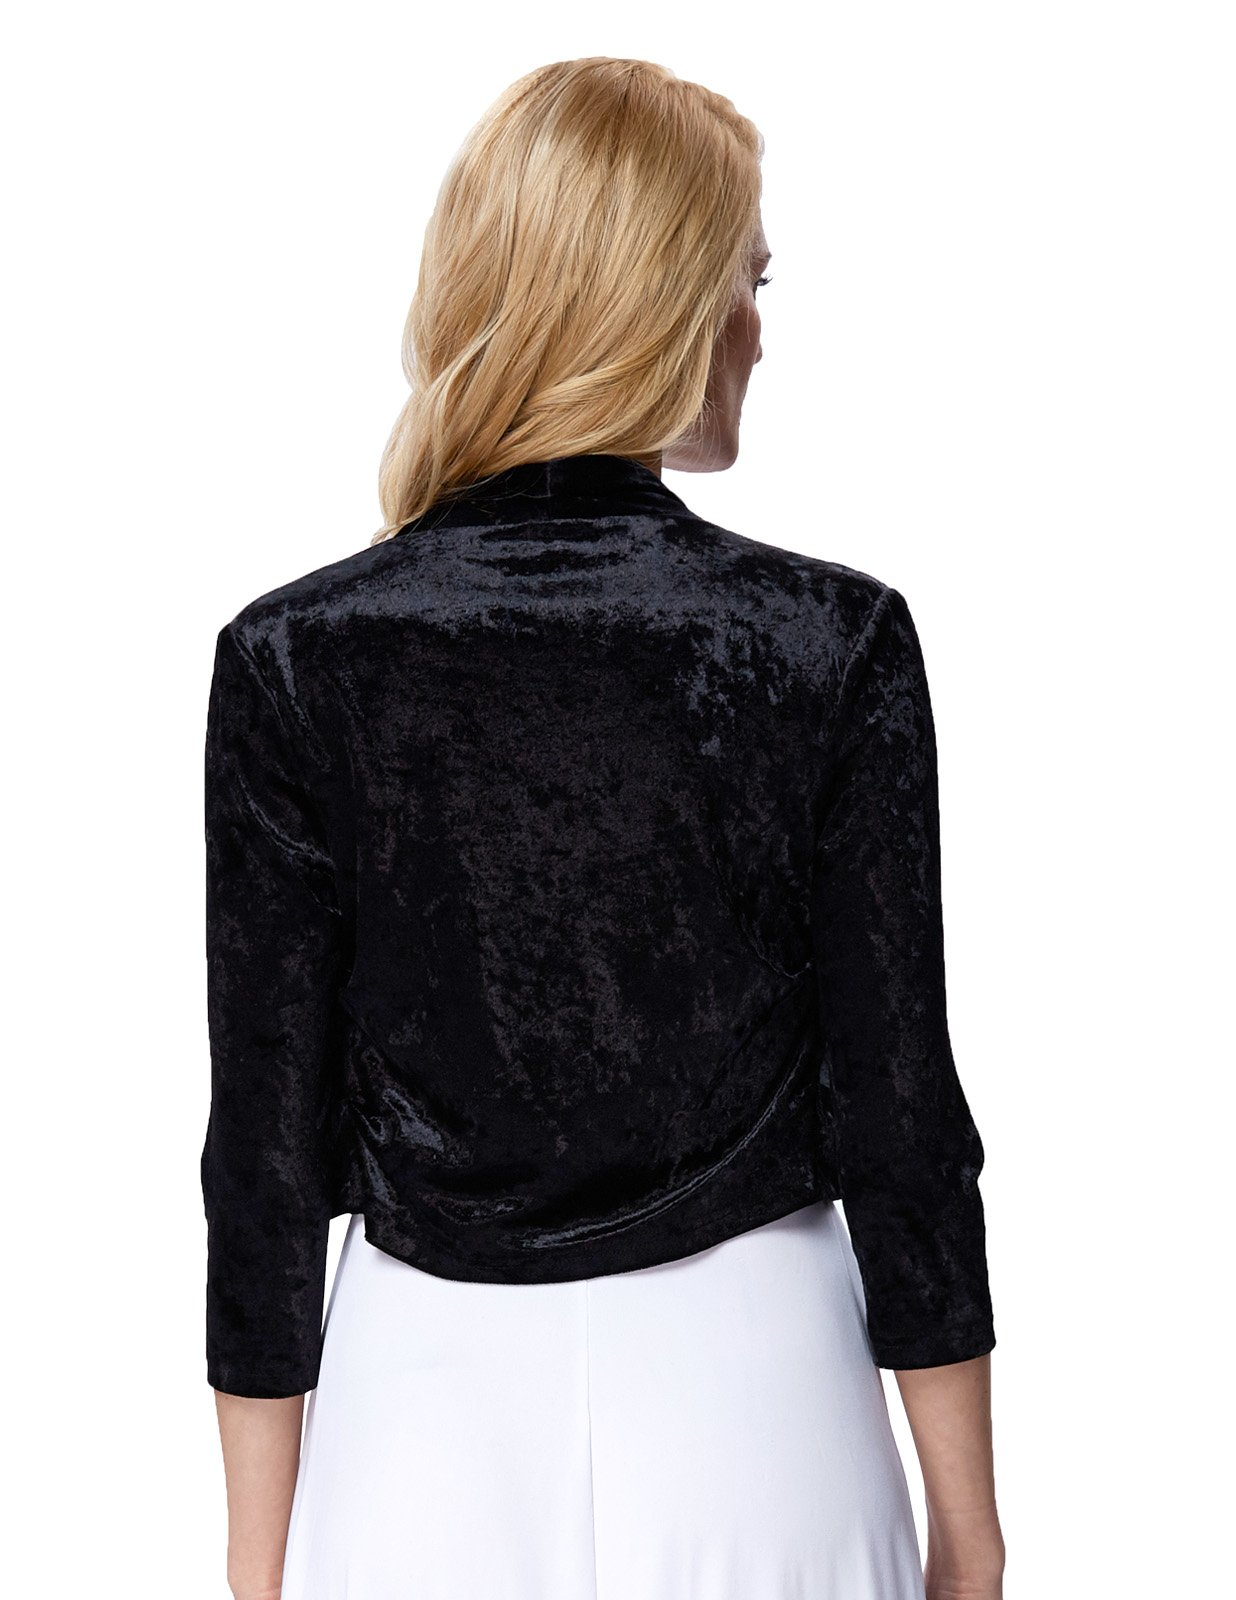 Solid Sleeves Bolero Outerwear Open Front for Teen Girls (L,Black 513-1) by JS Fashion Vintage Dress (Image #2)